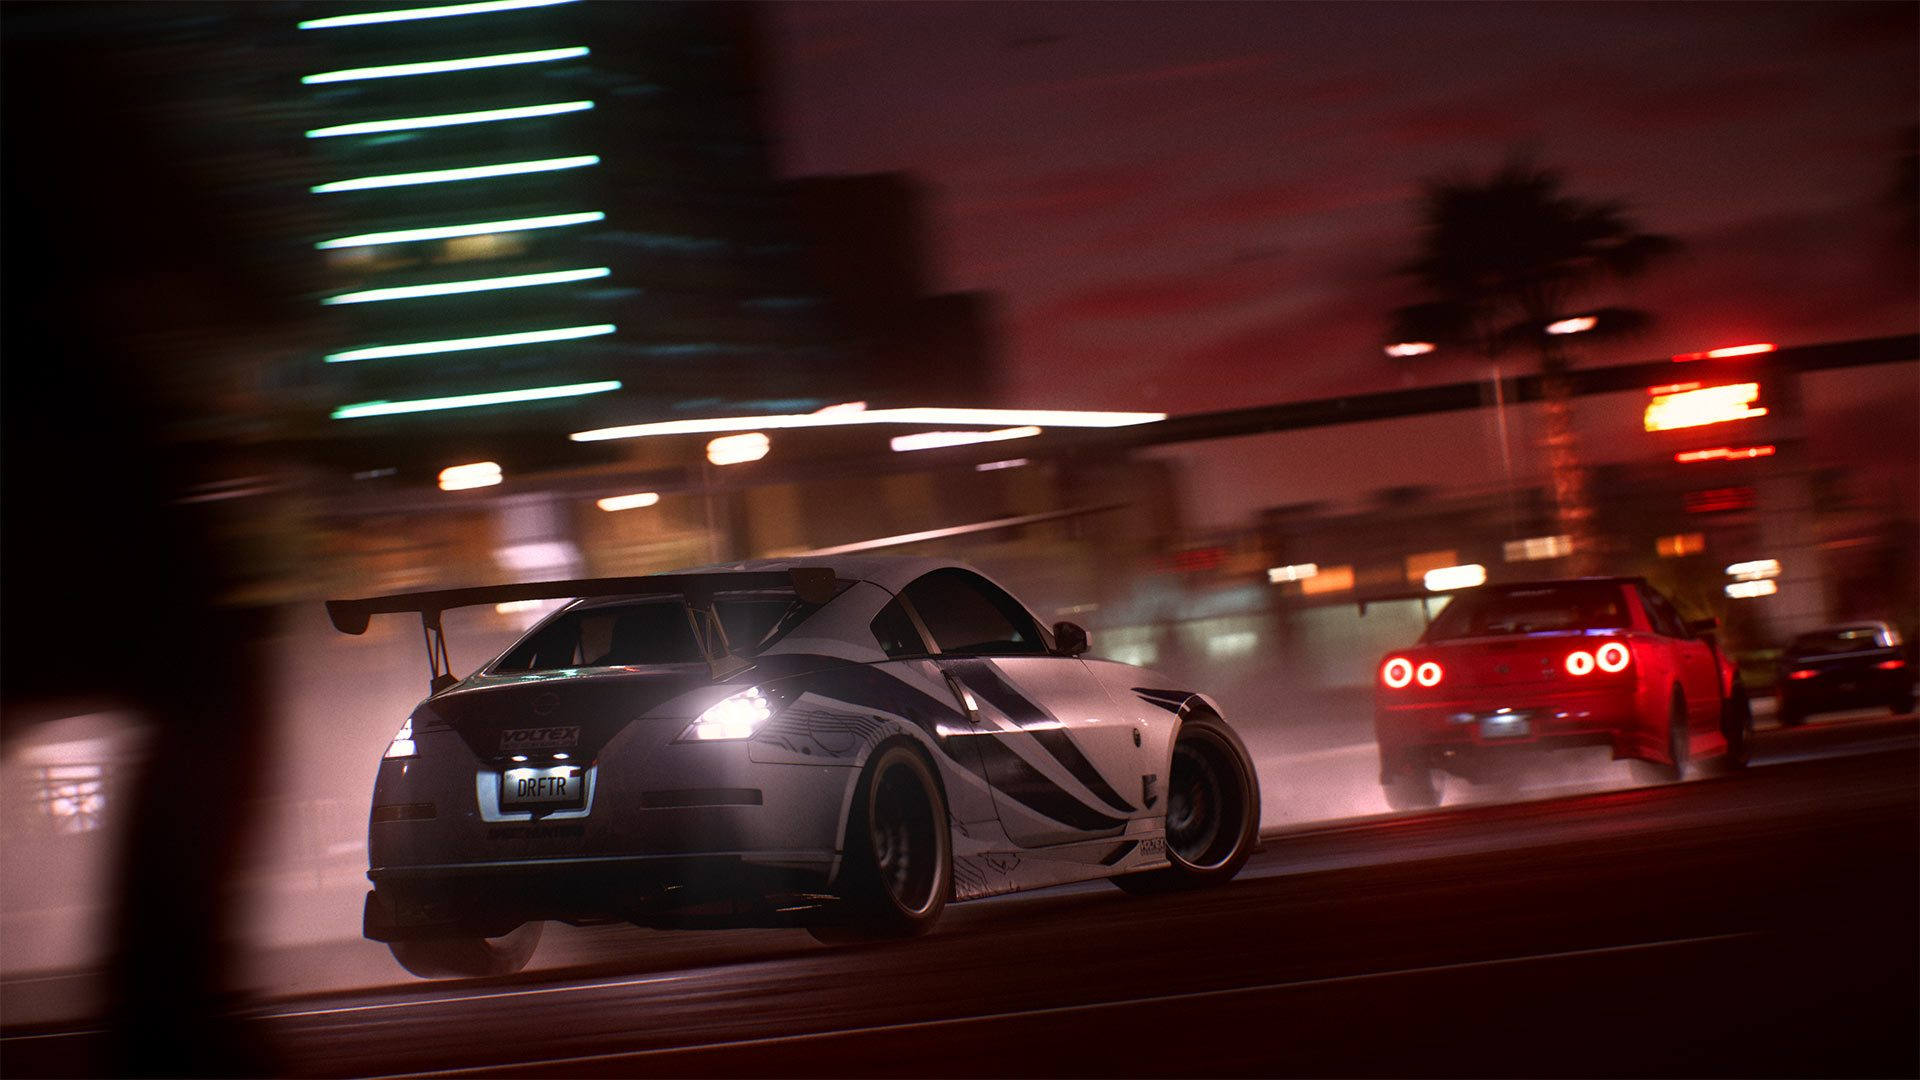 nfs-payback-action-driving-fantasy.jpg.a